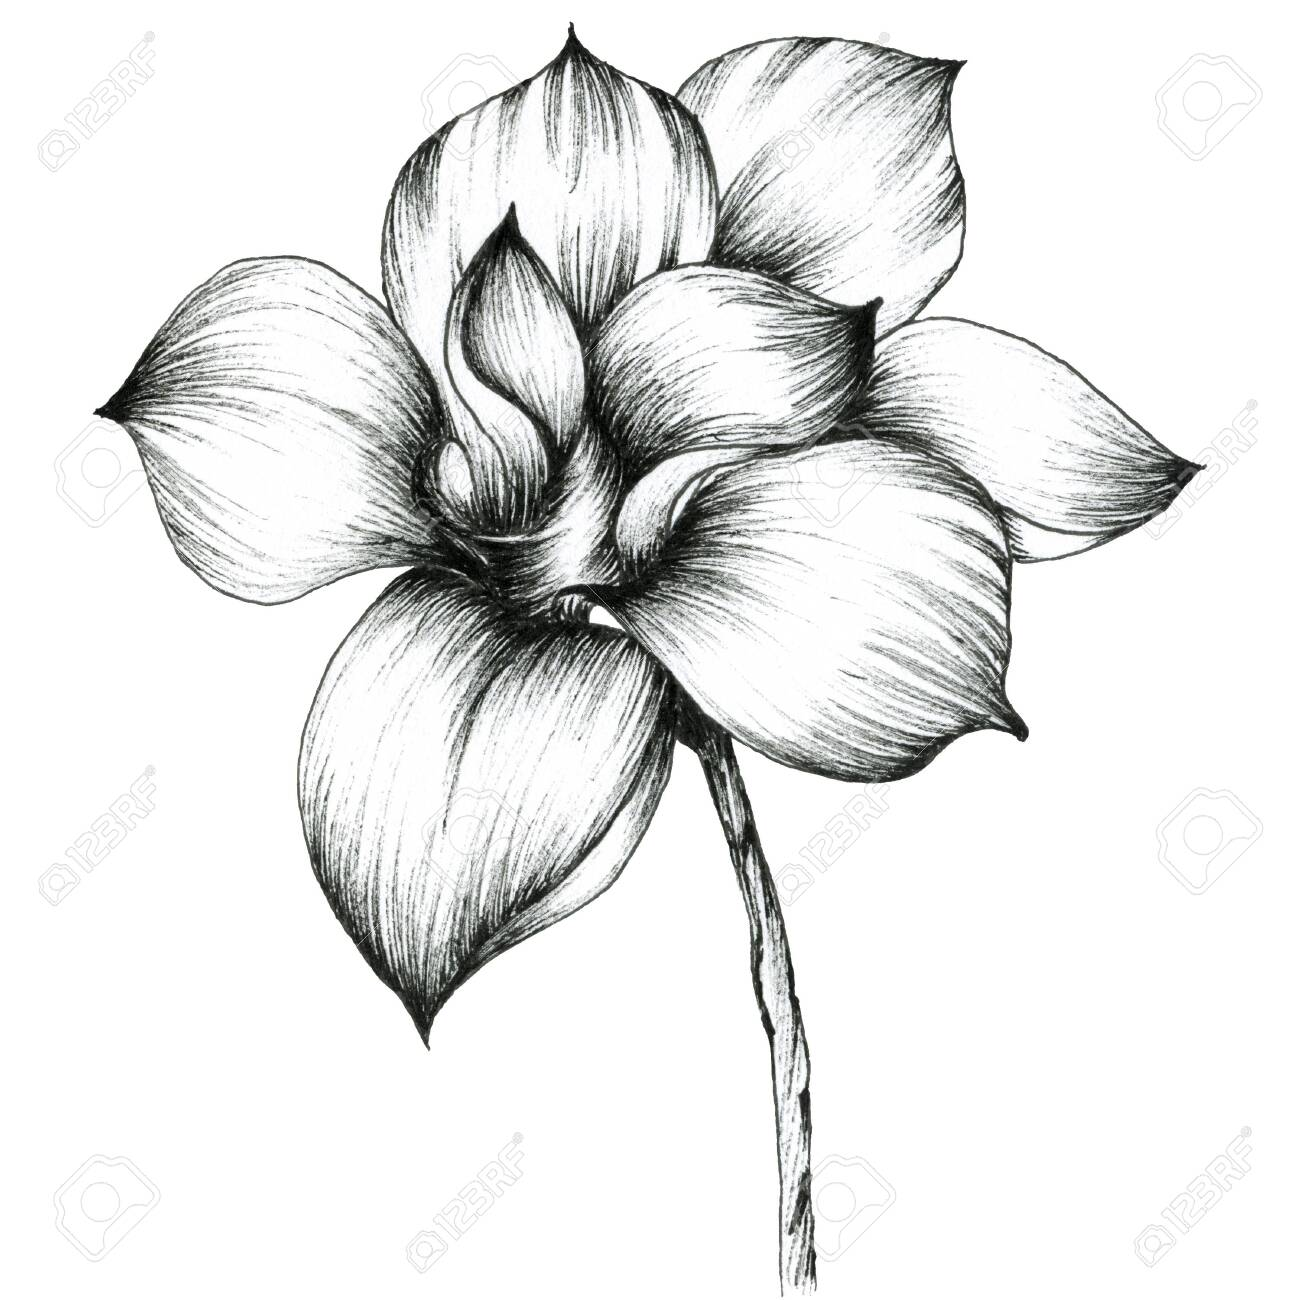 Magnolia Graphic Illustration Of Blooming Magnolia Big Flower Stock Photo Picture And Royalty Free Image Image 130684196,Boneless Ribs In Oven